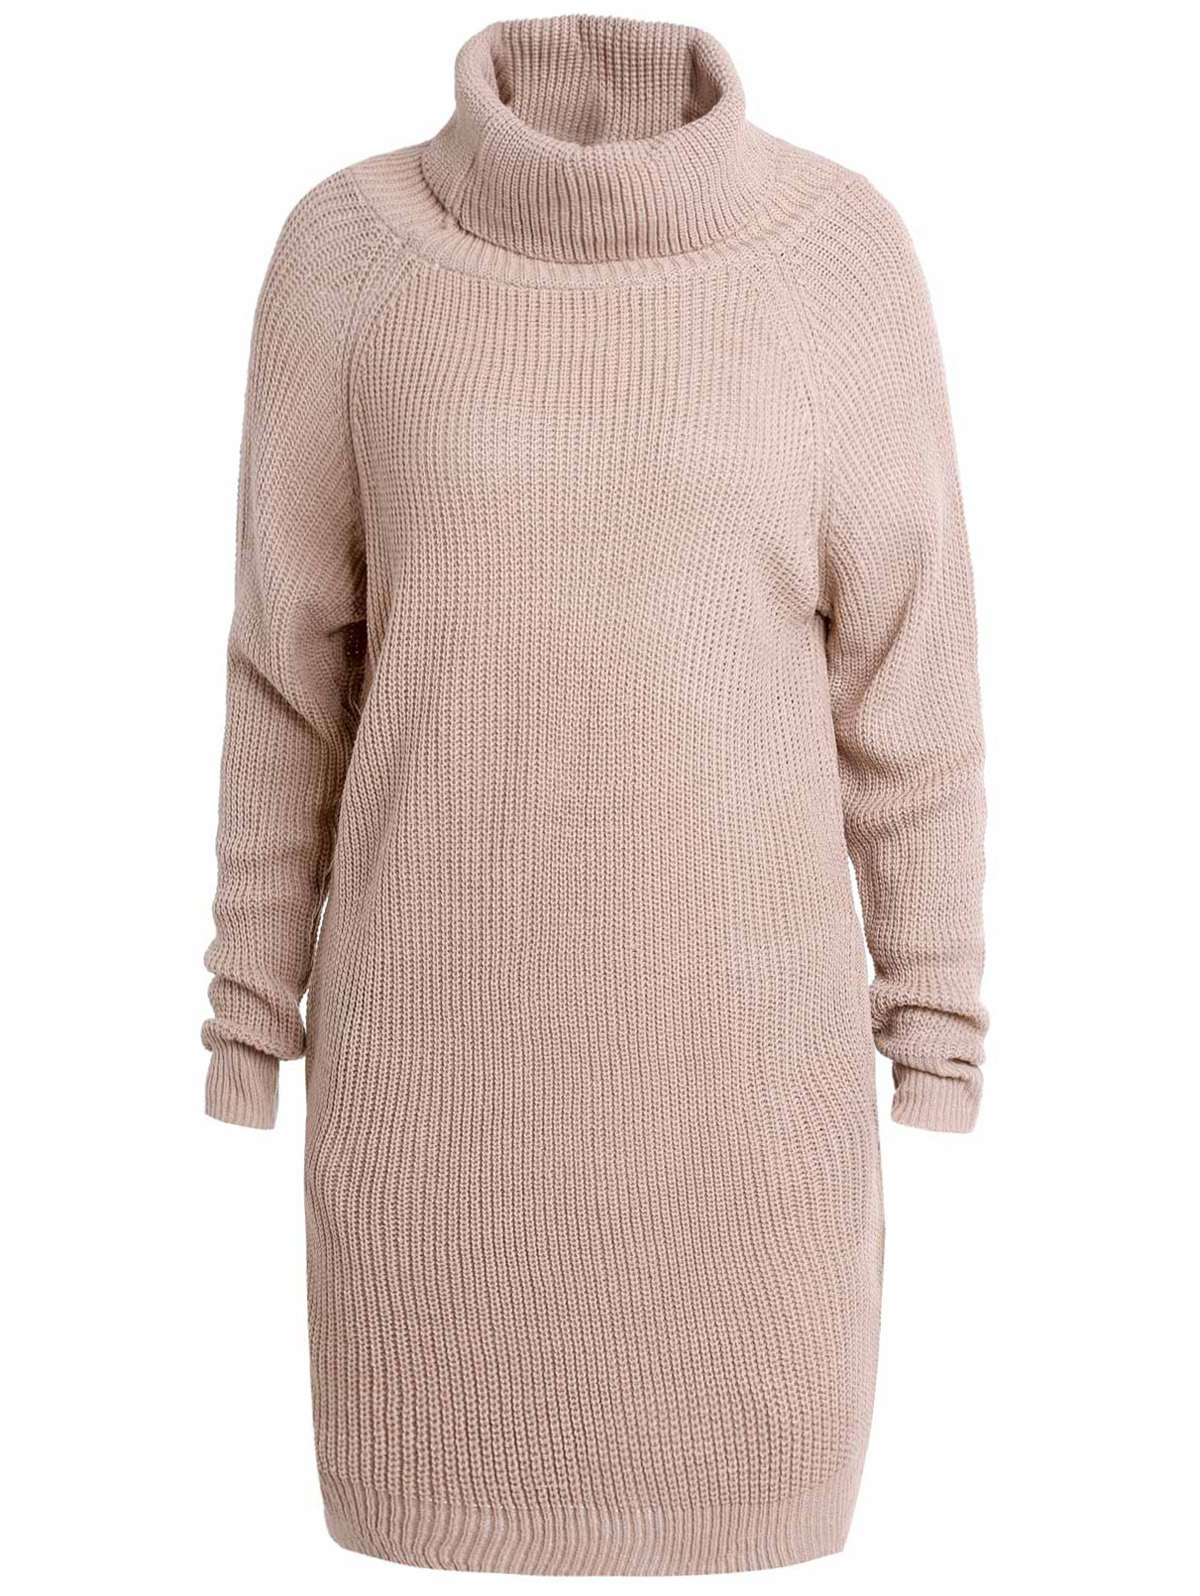 2018 Stylish Long Sleeve Turtleneck Loose-Fitting Pure Color ...